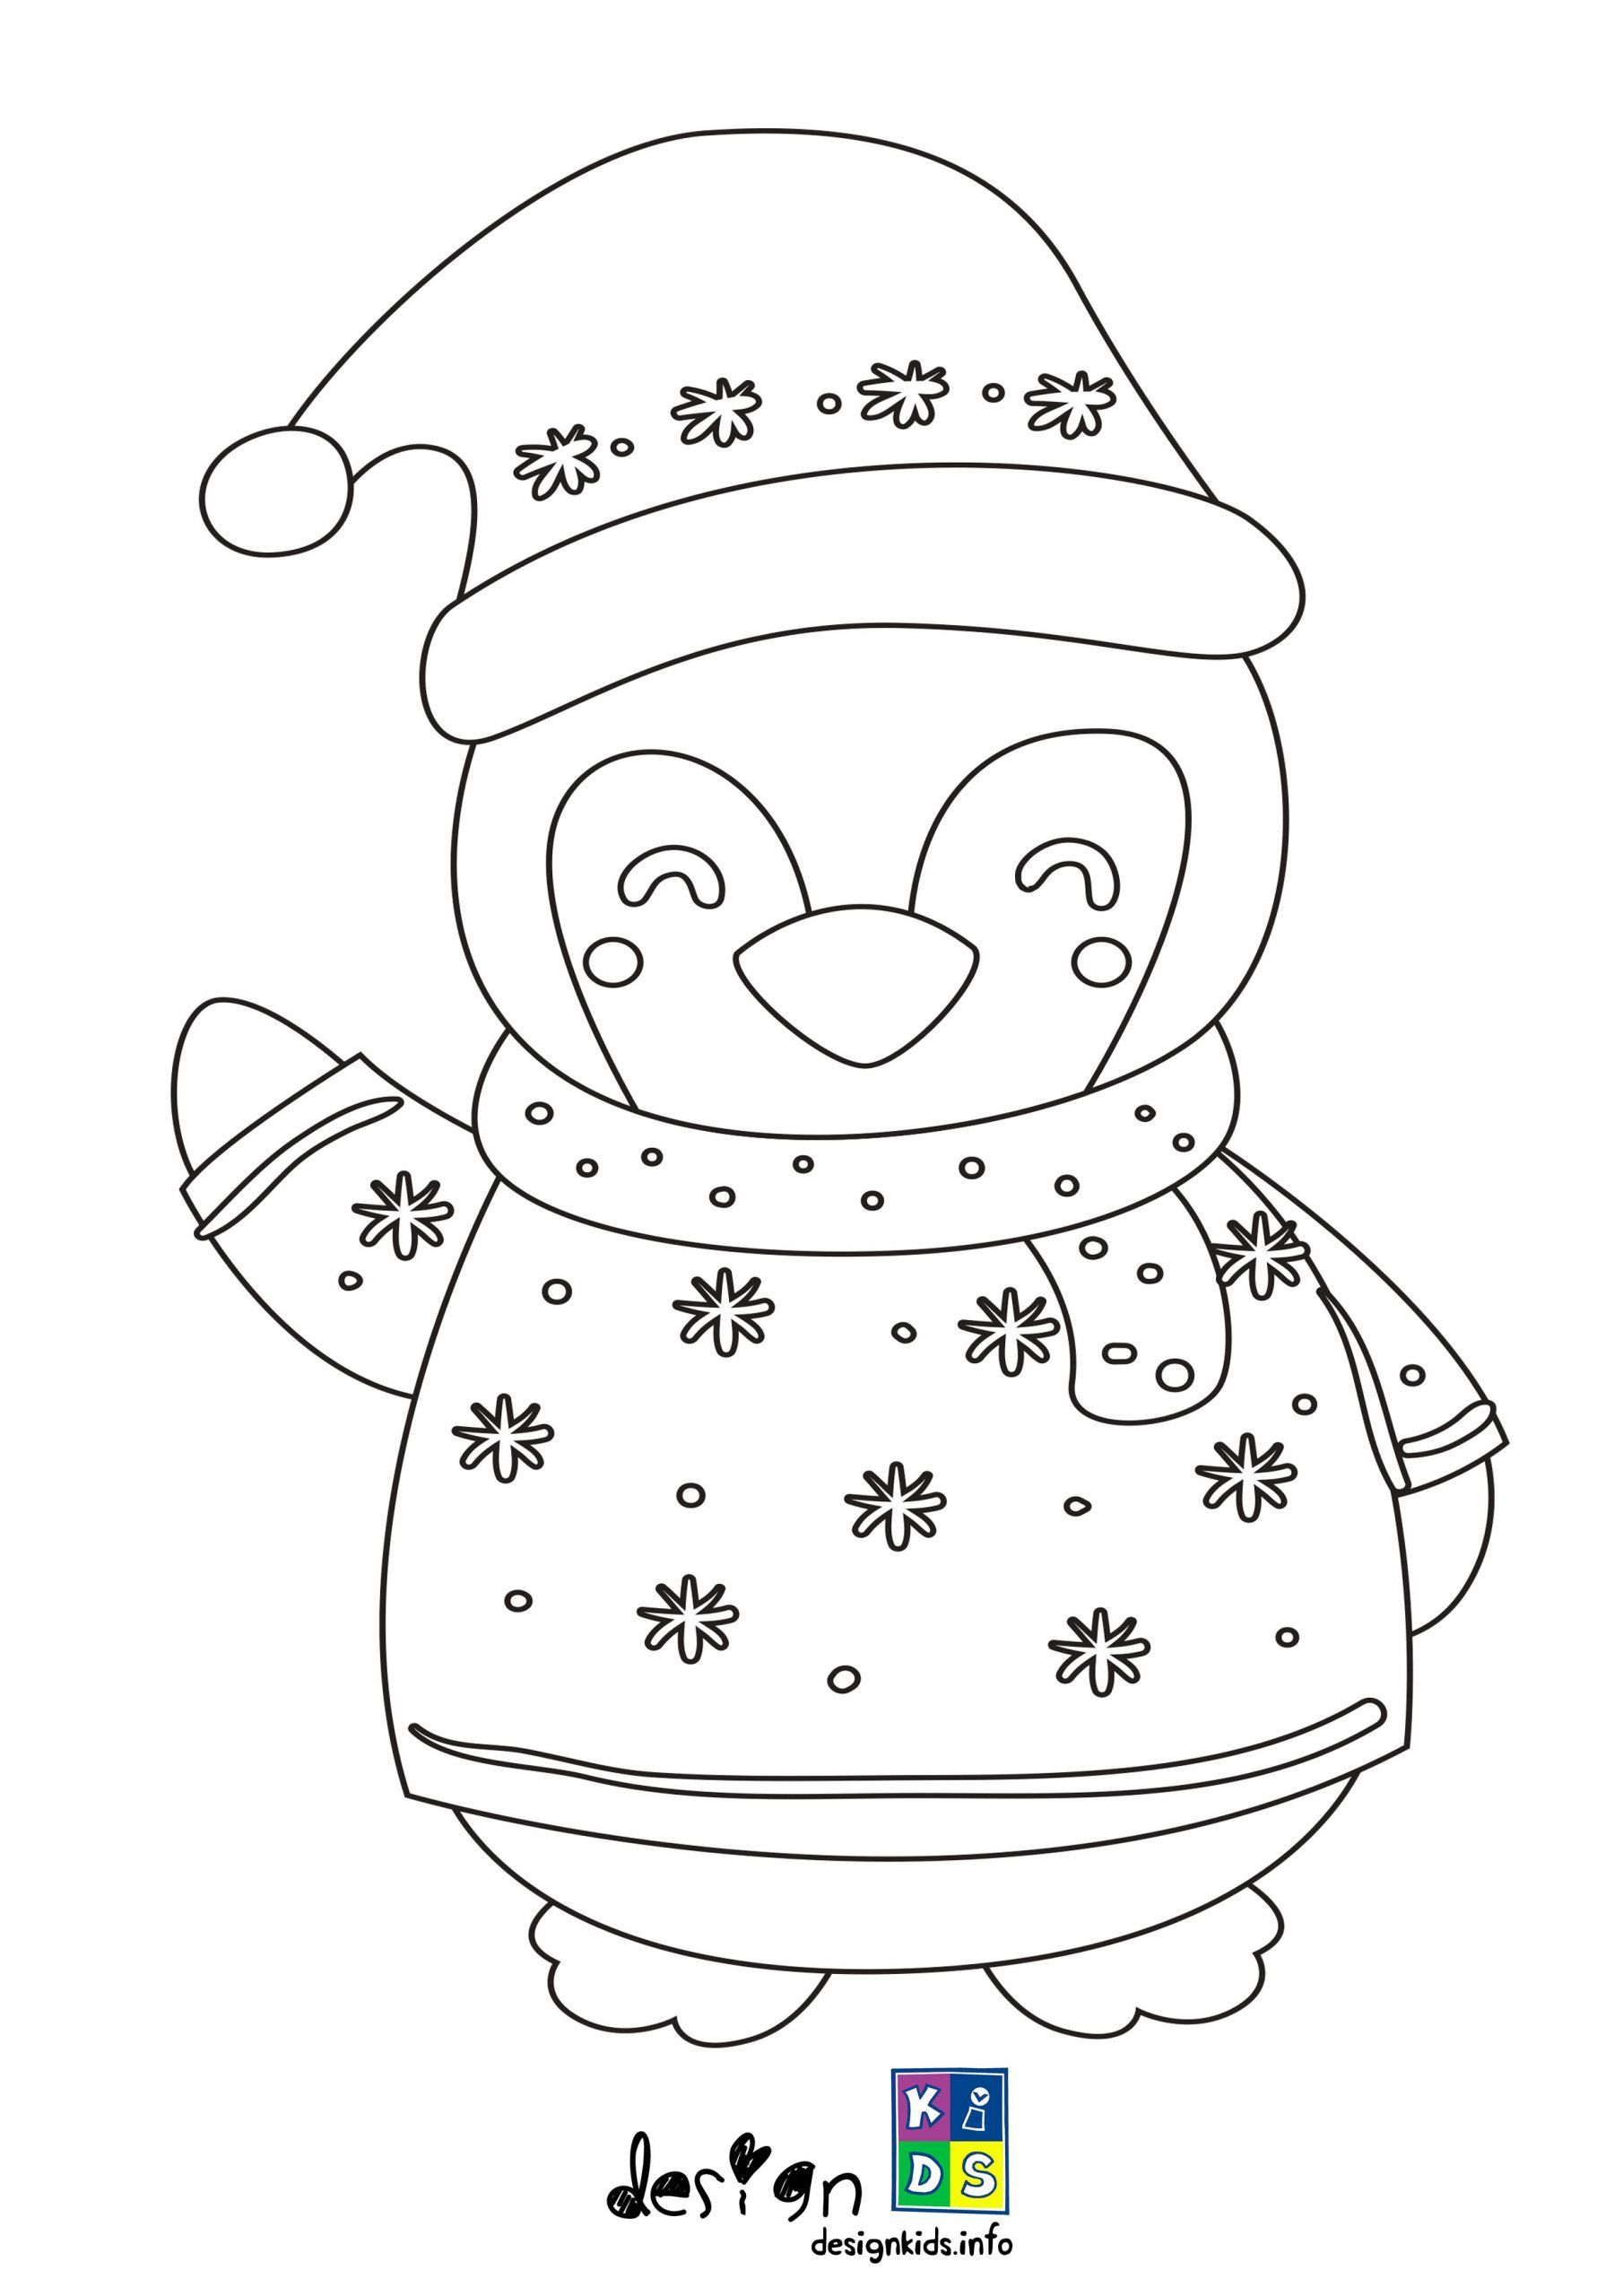 Cute Penguin Special Christmas Coloring Page Make Your World More Colorful With Free Prin Free Printable Coloring Pages Free Printable Coloring Coloring Pages